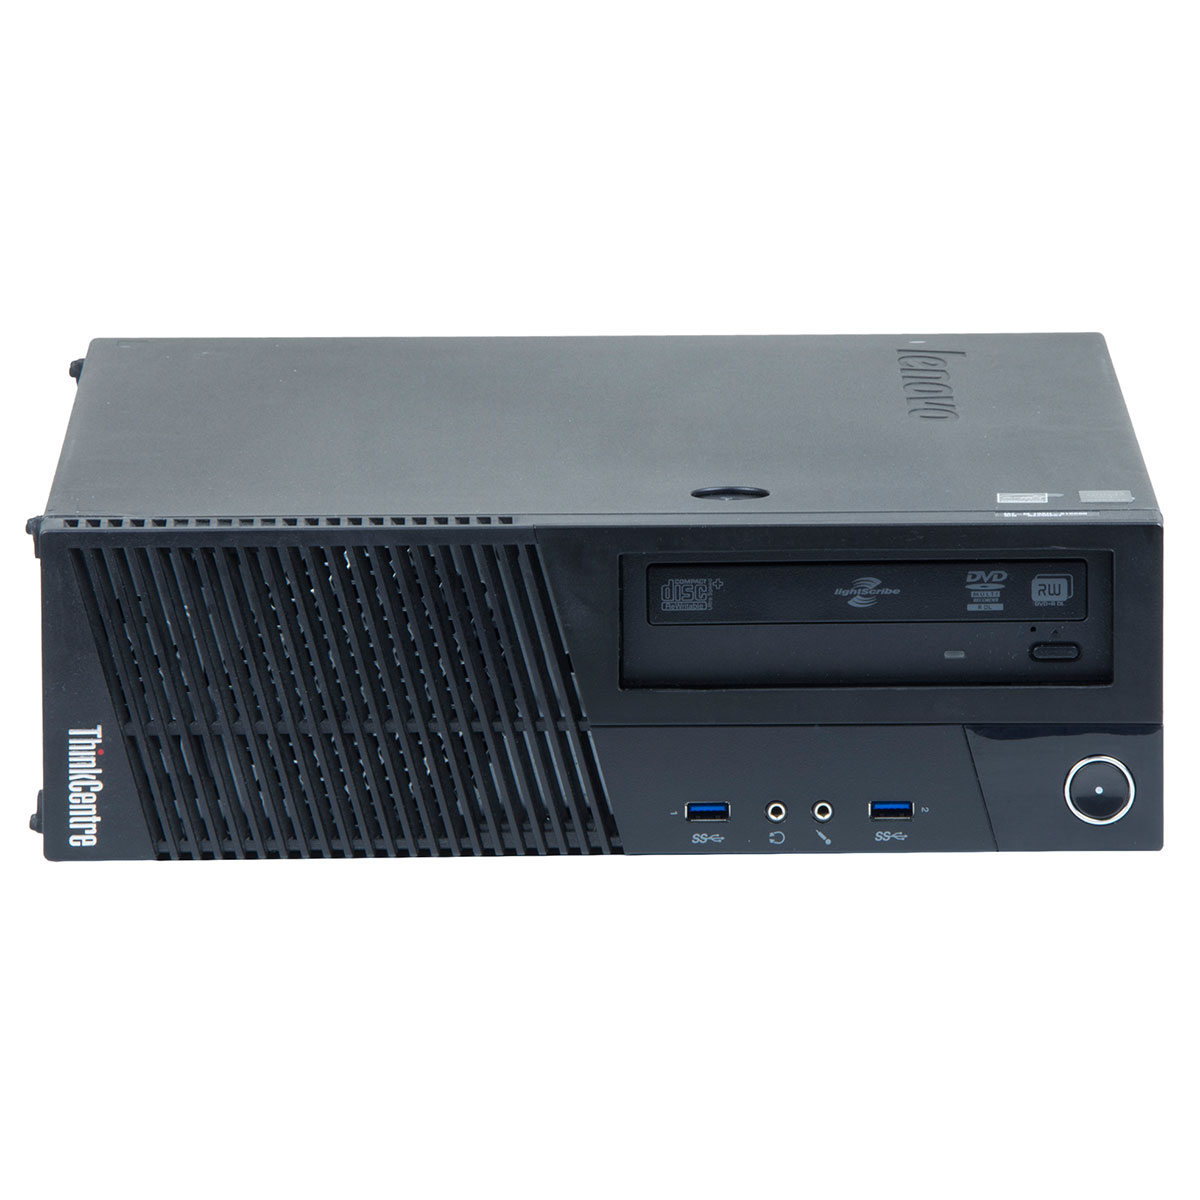 Lenovo ThinkCentre M83 Intel Core i7-4790K 4.00GHz  8GB DDR3  256GB SSD  SFF  Windows 10 Home MAR  calculator refurbished